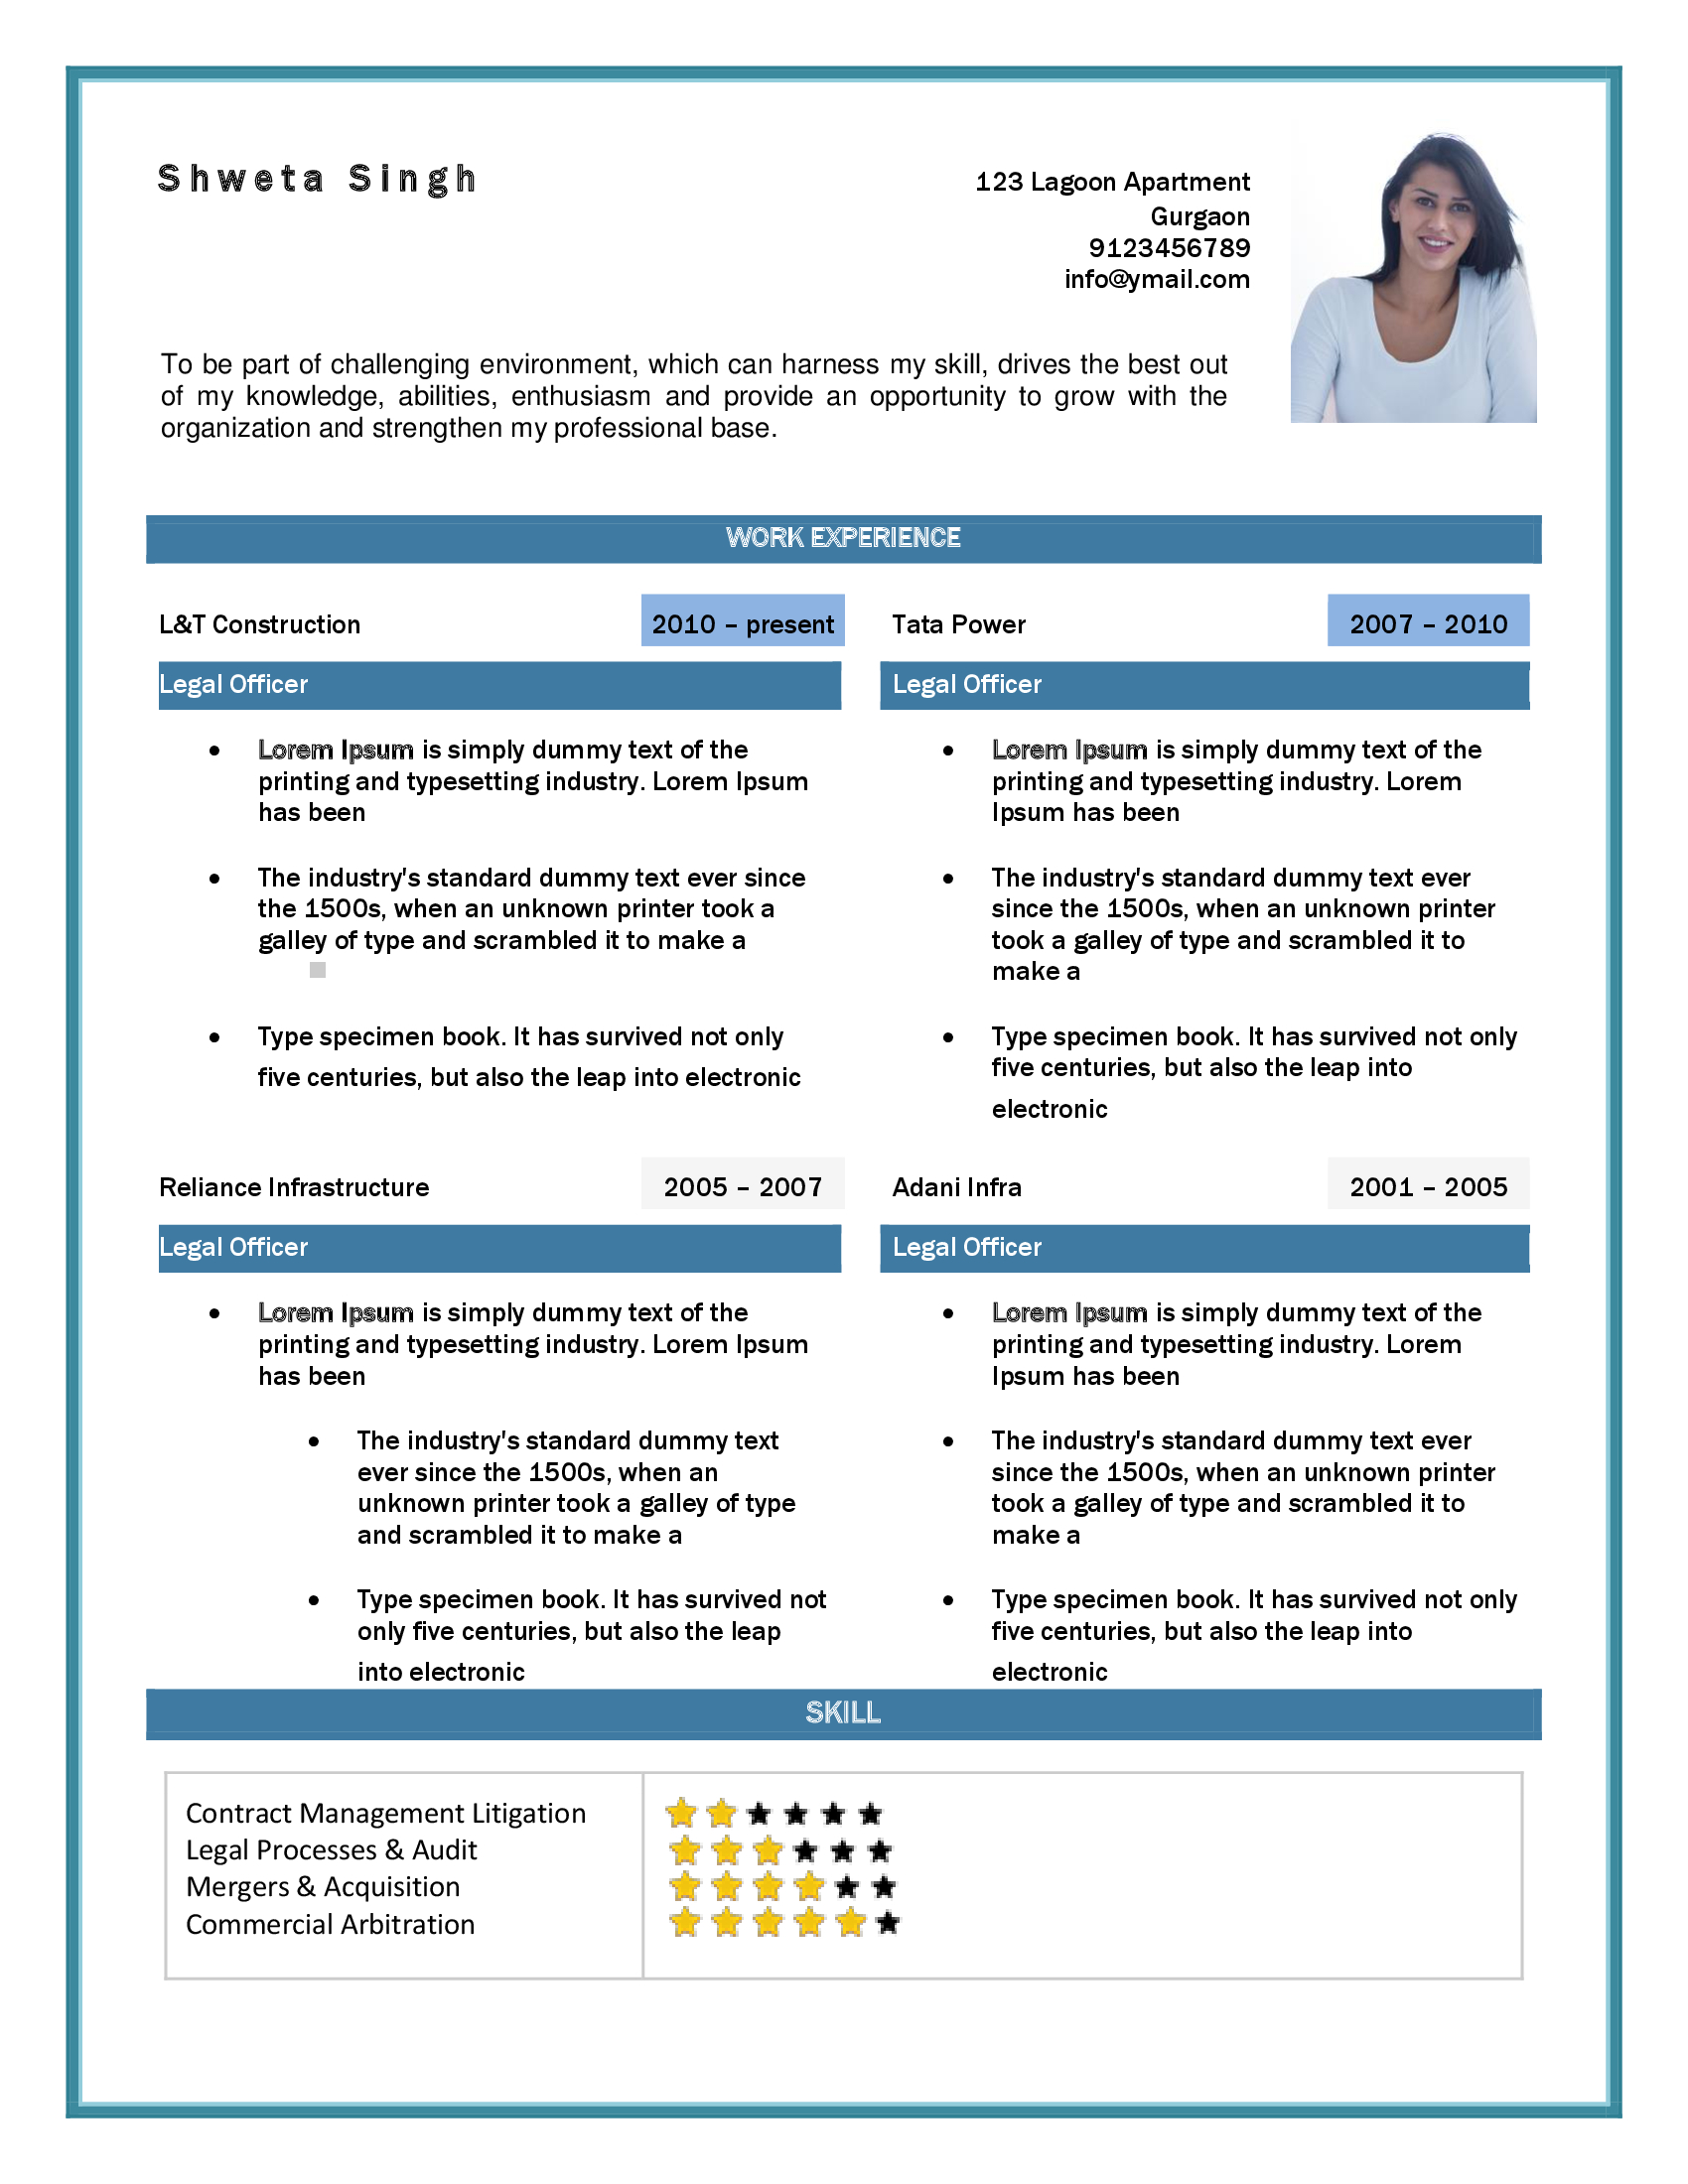 sample resume for human resources manager cover letter sample resume for human resources manager human resources manager resume career faqs crm analyst resume benjerryco